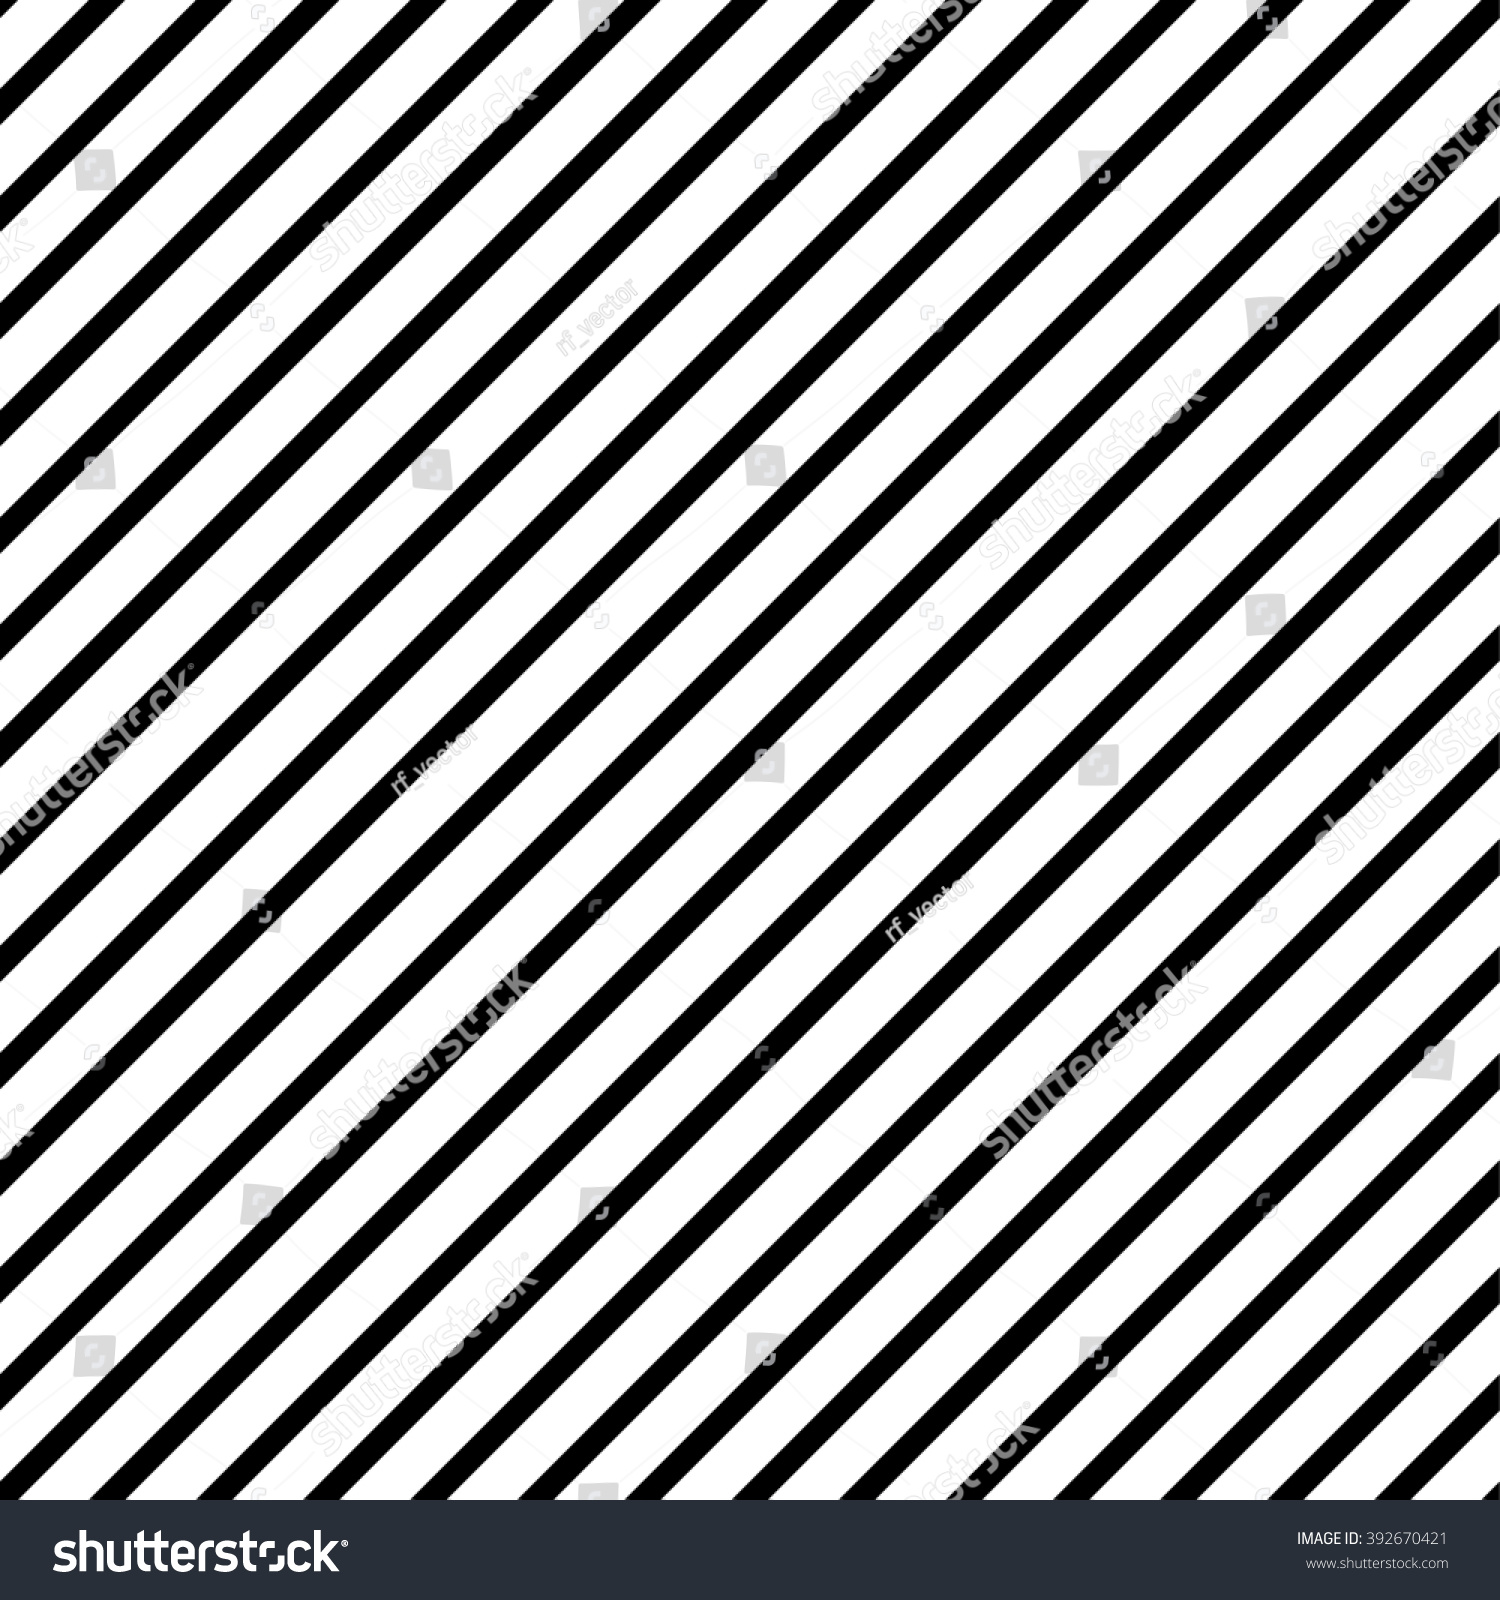 Line Texture Black And White : Seamless repeatable geometric pattern diagonal lines stock